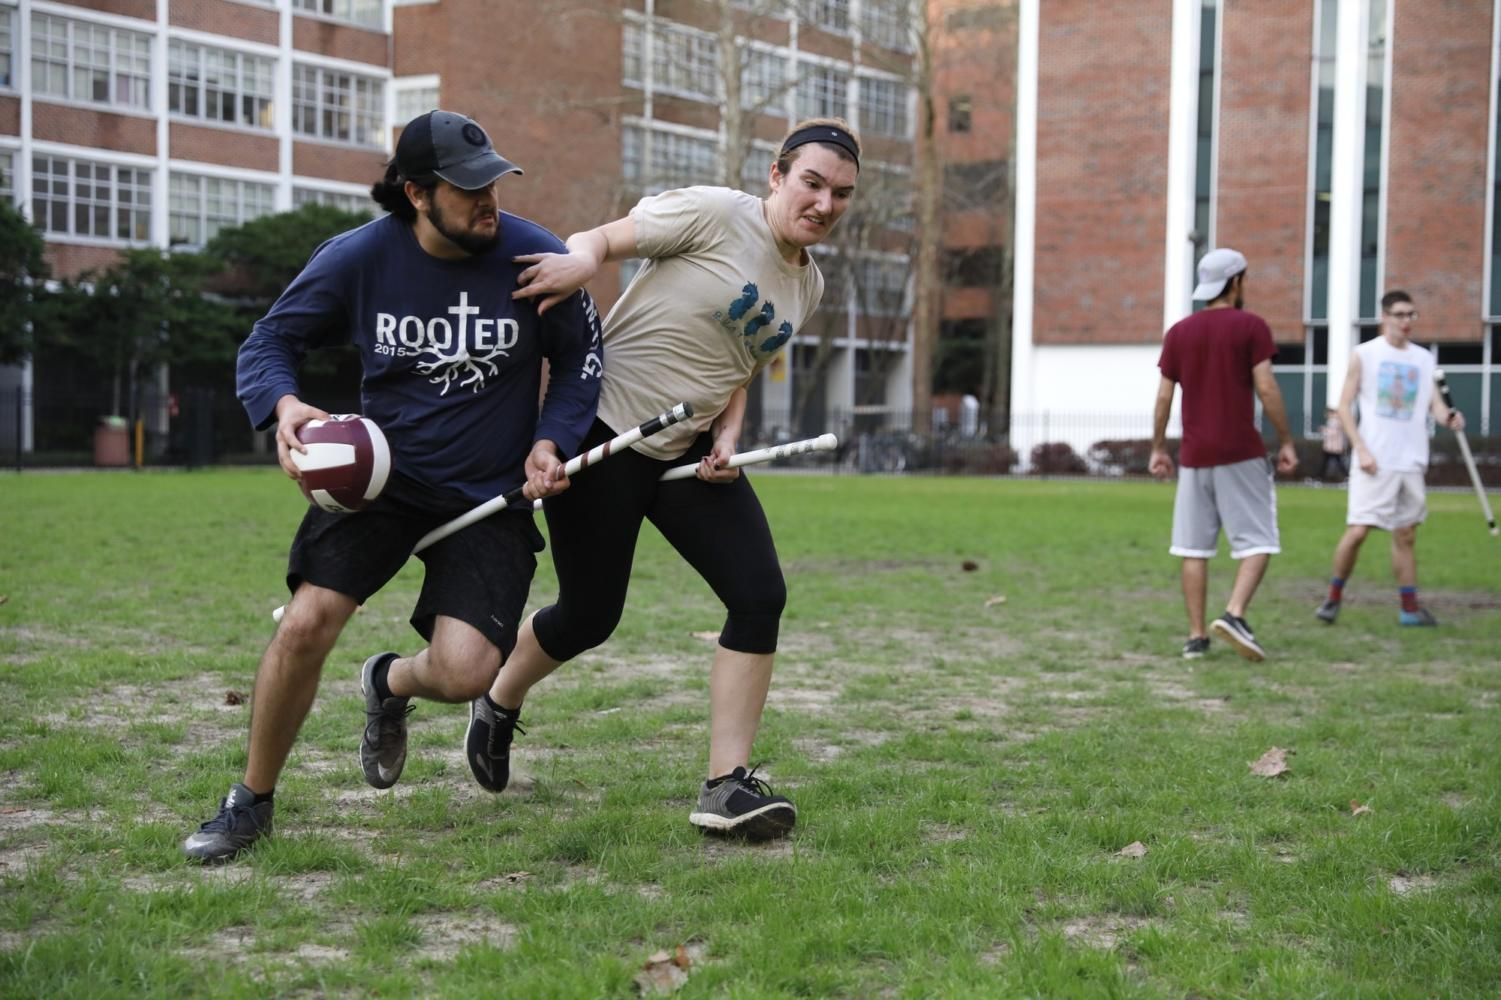 Quidditch team focusing on rebuilding this season